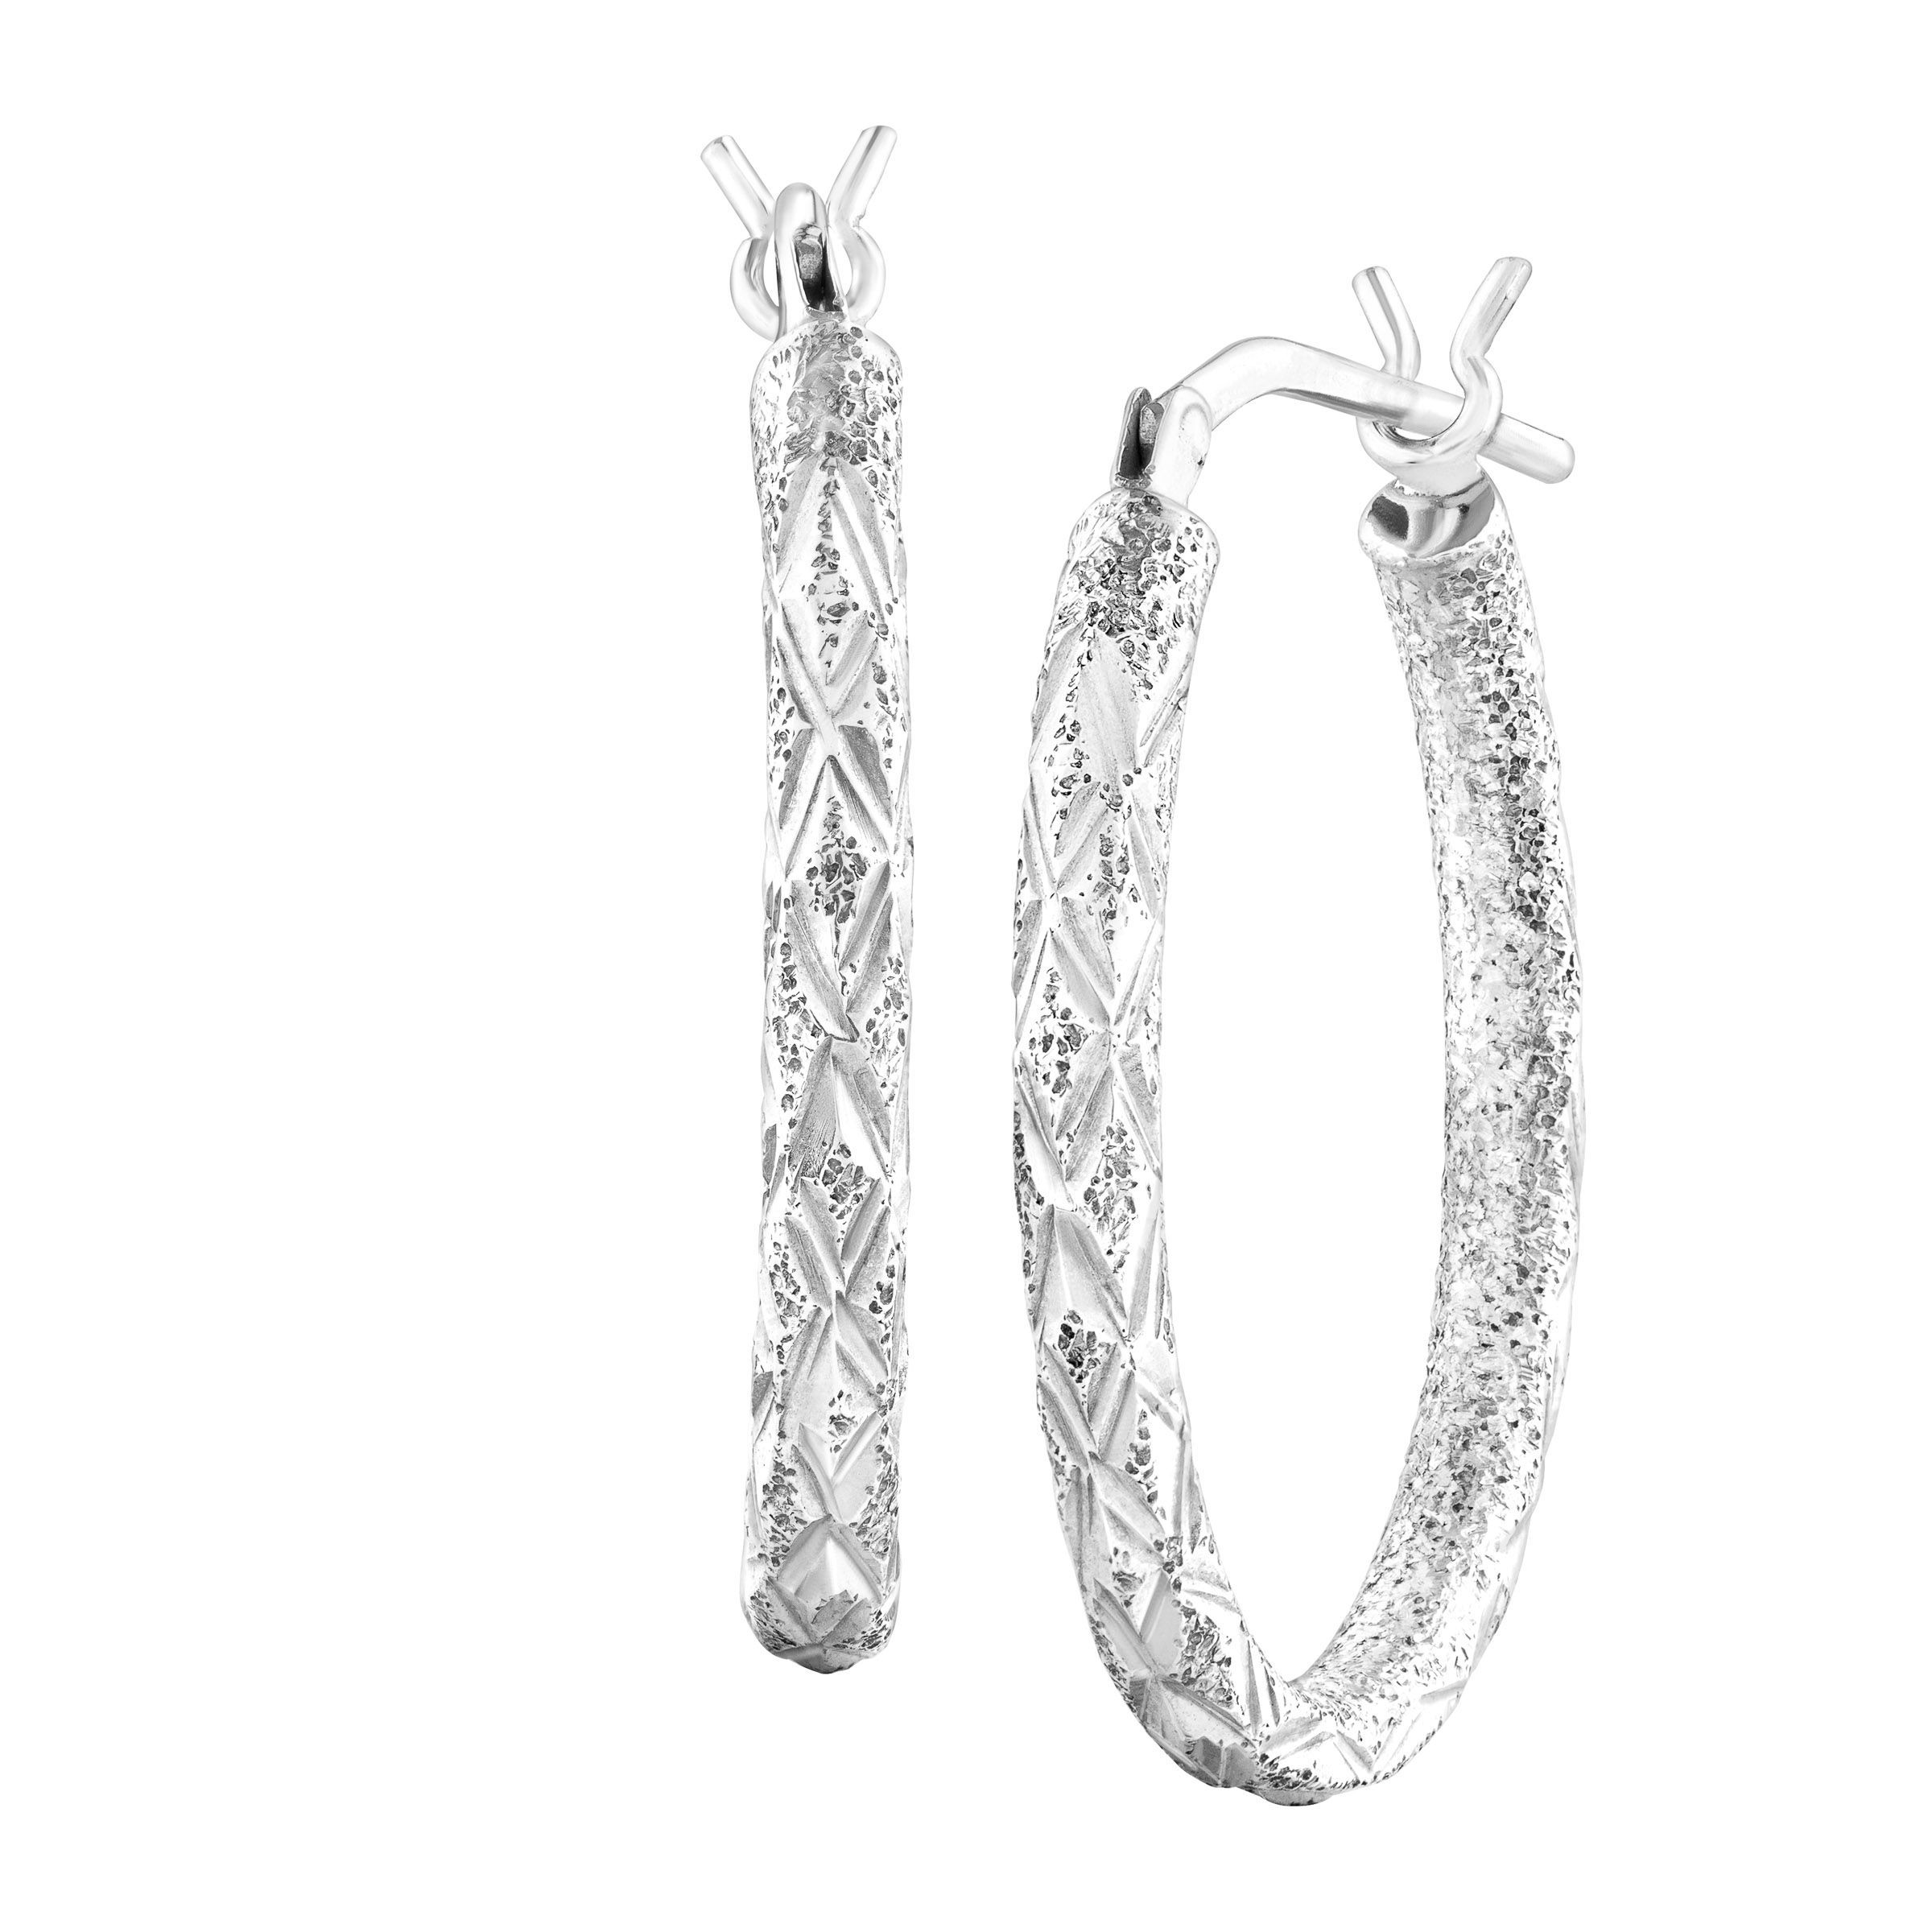 Etched Oval Tube Hoop Earrings in Sterling Silver